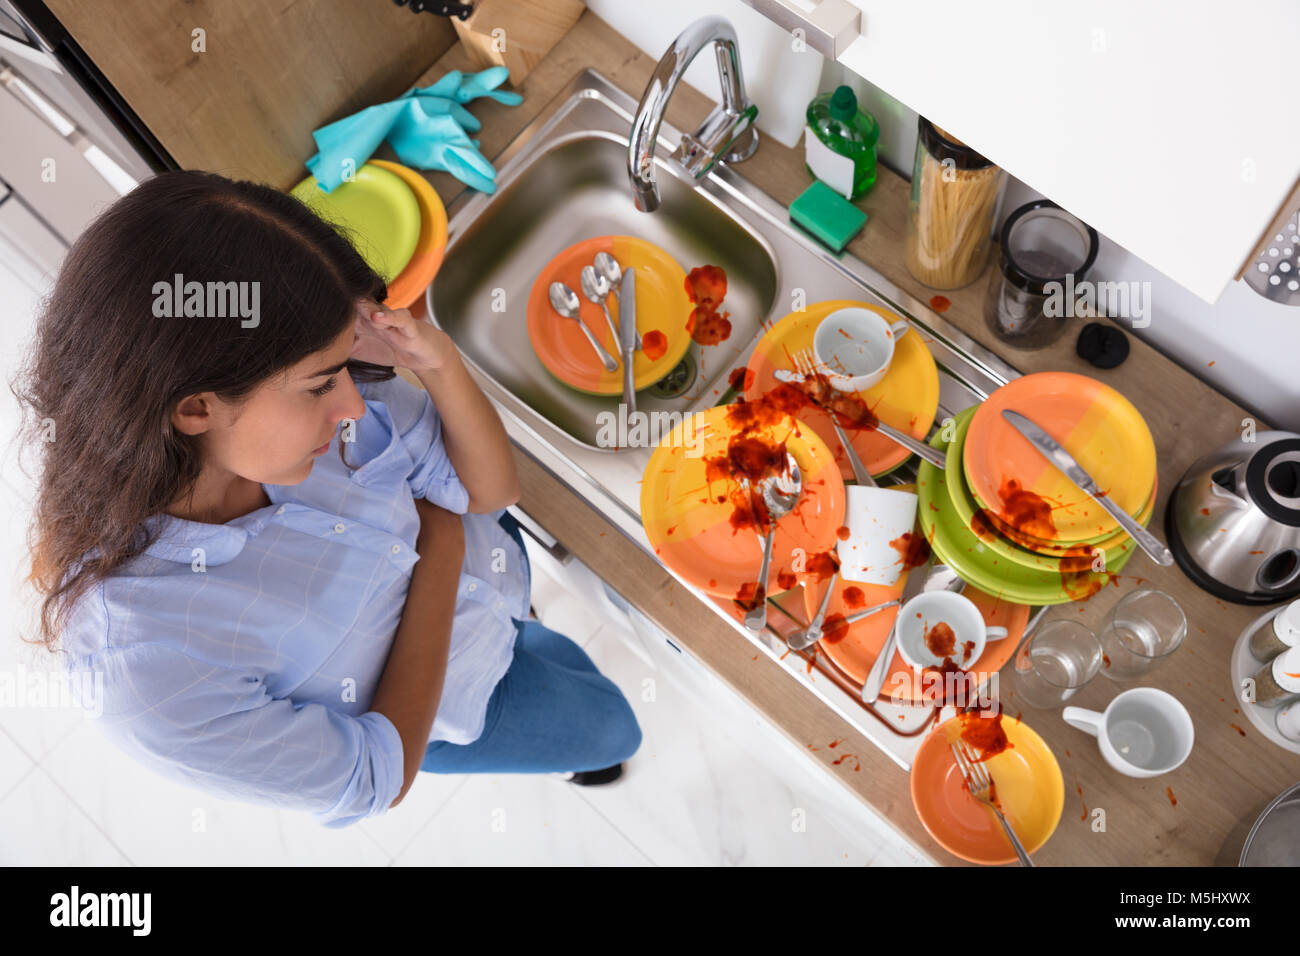 High Angle View Of Stressed Young Woman Looking At Unwashed Utensils In Kitchen - Stock Image